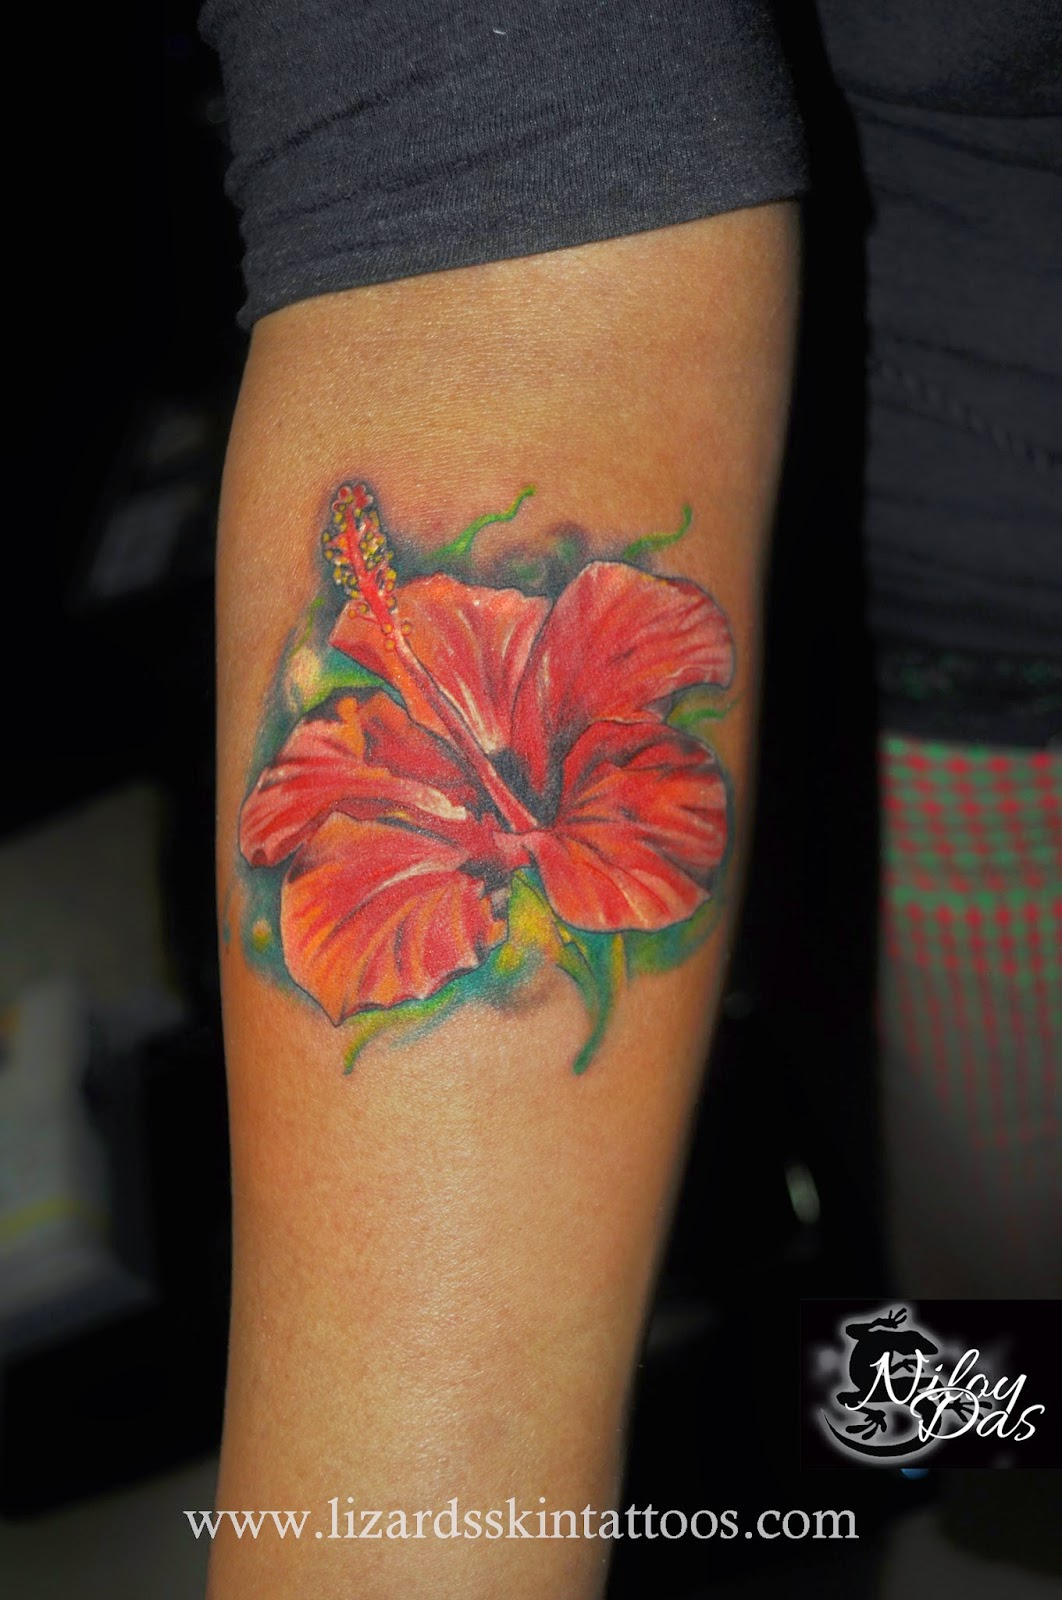 Lizards Skin Tattoos Hibiscus Flower Tattoo By Artist Niloy Das India